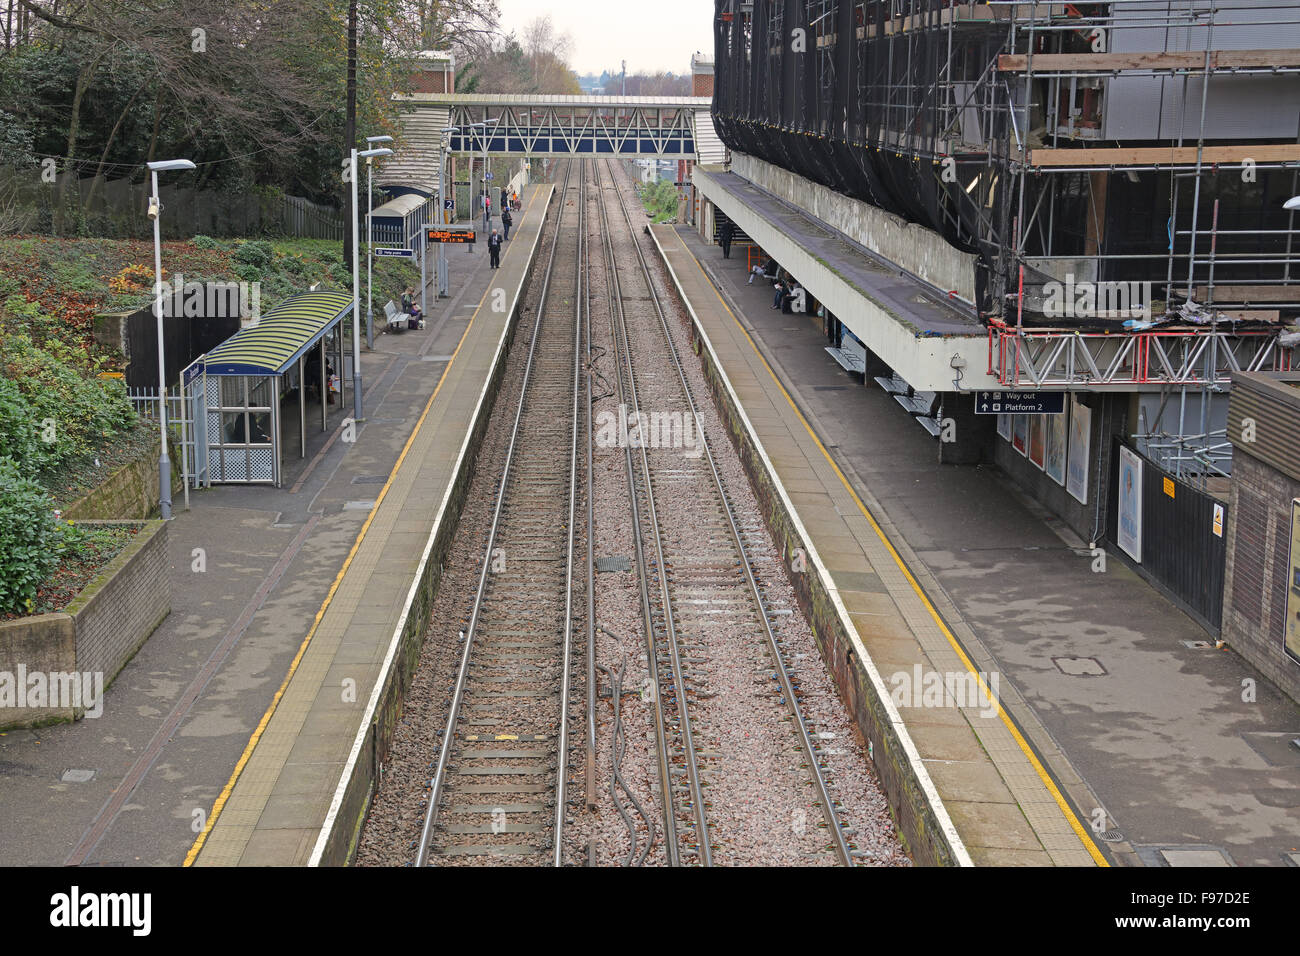 he view along the platforms towards the signal on third rail electrified lines with passengers waiting on the up - Stock Image